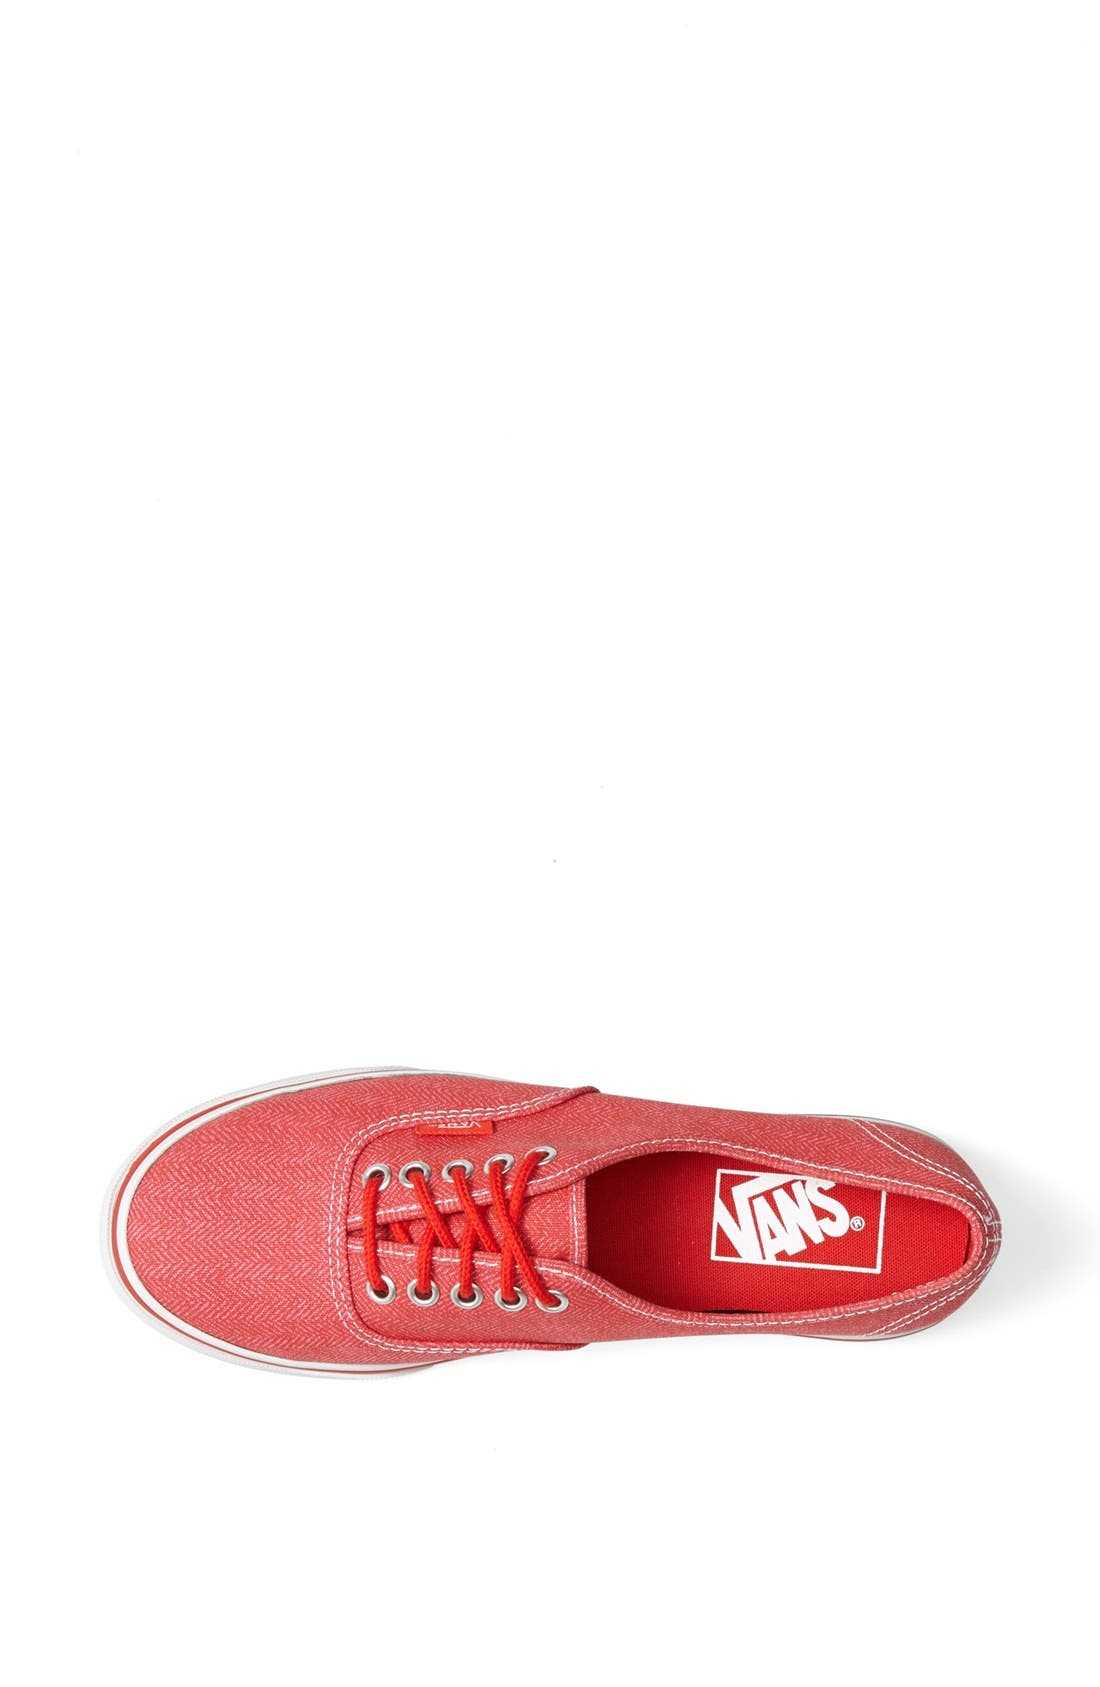 Alternate Image 3  - Vans 'Authentic - Lo Pro' Print Sneaker